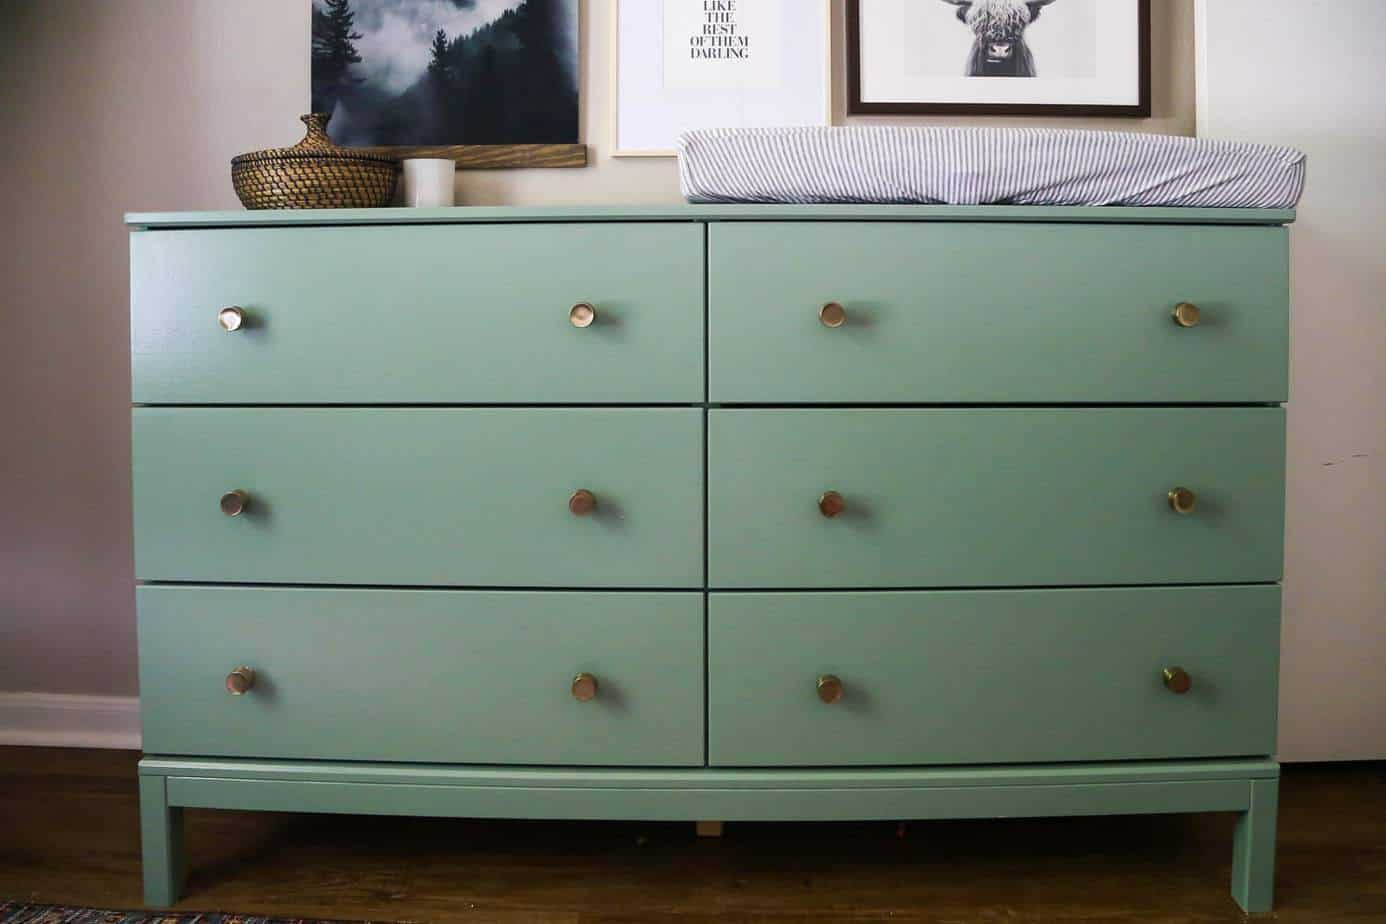 Ikea Tarva Dresser Hack From Dresser To Changing Table Love